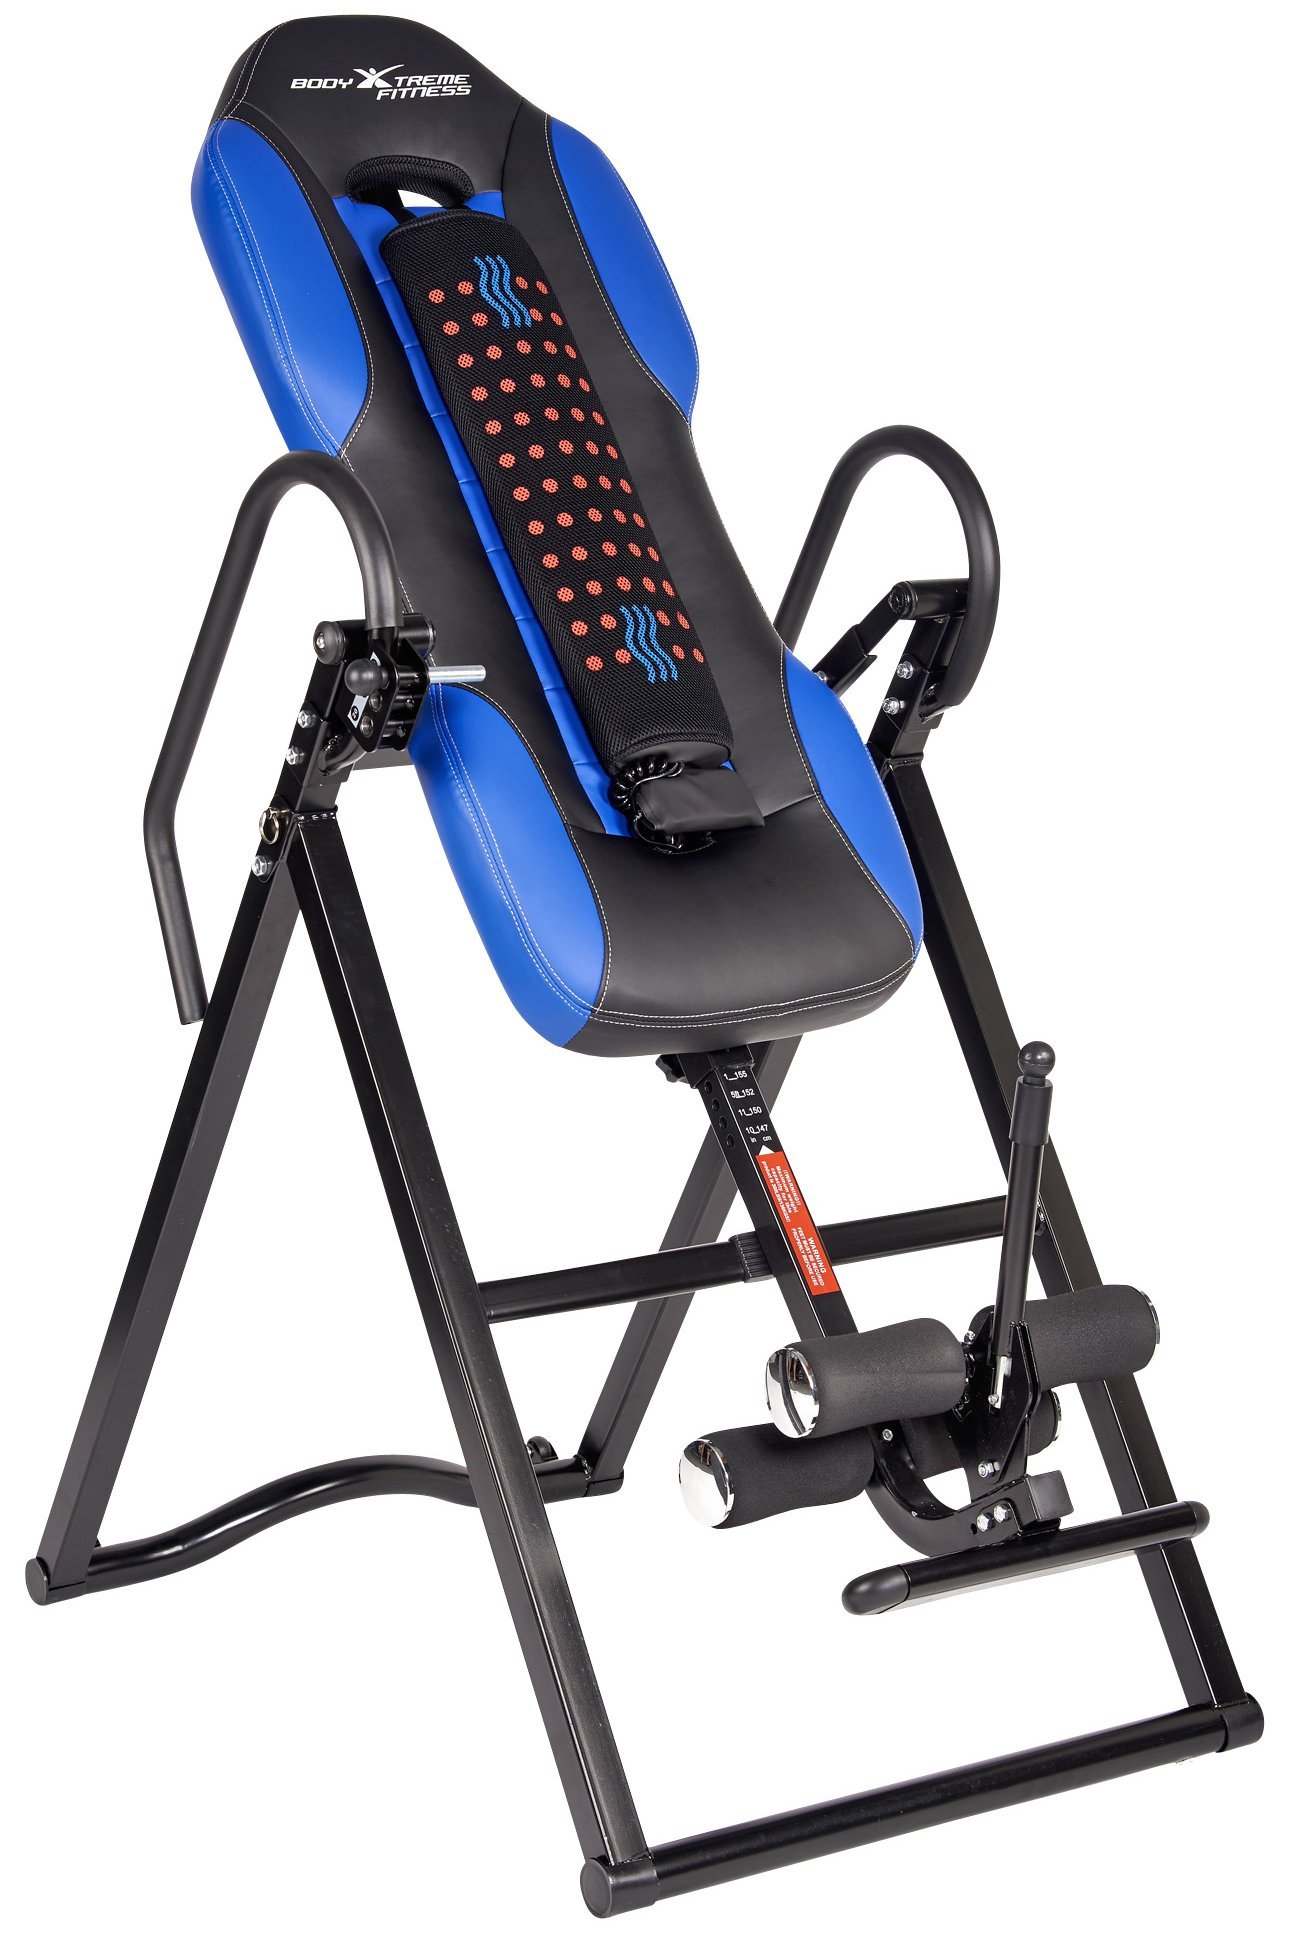 Body Xtreme Fitness ~ Inversion Table, Advanced Heat and Massage Therapeutic Inversion Table, Comfort Foam Backrest, Back Fitness Therapy Relief + BONUS Cooling Towel by Body Xtreme Fitness USA